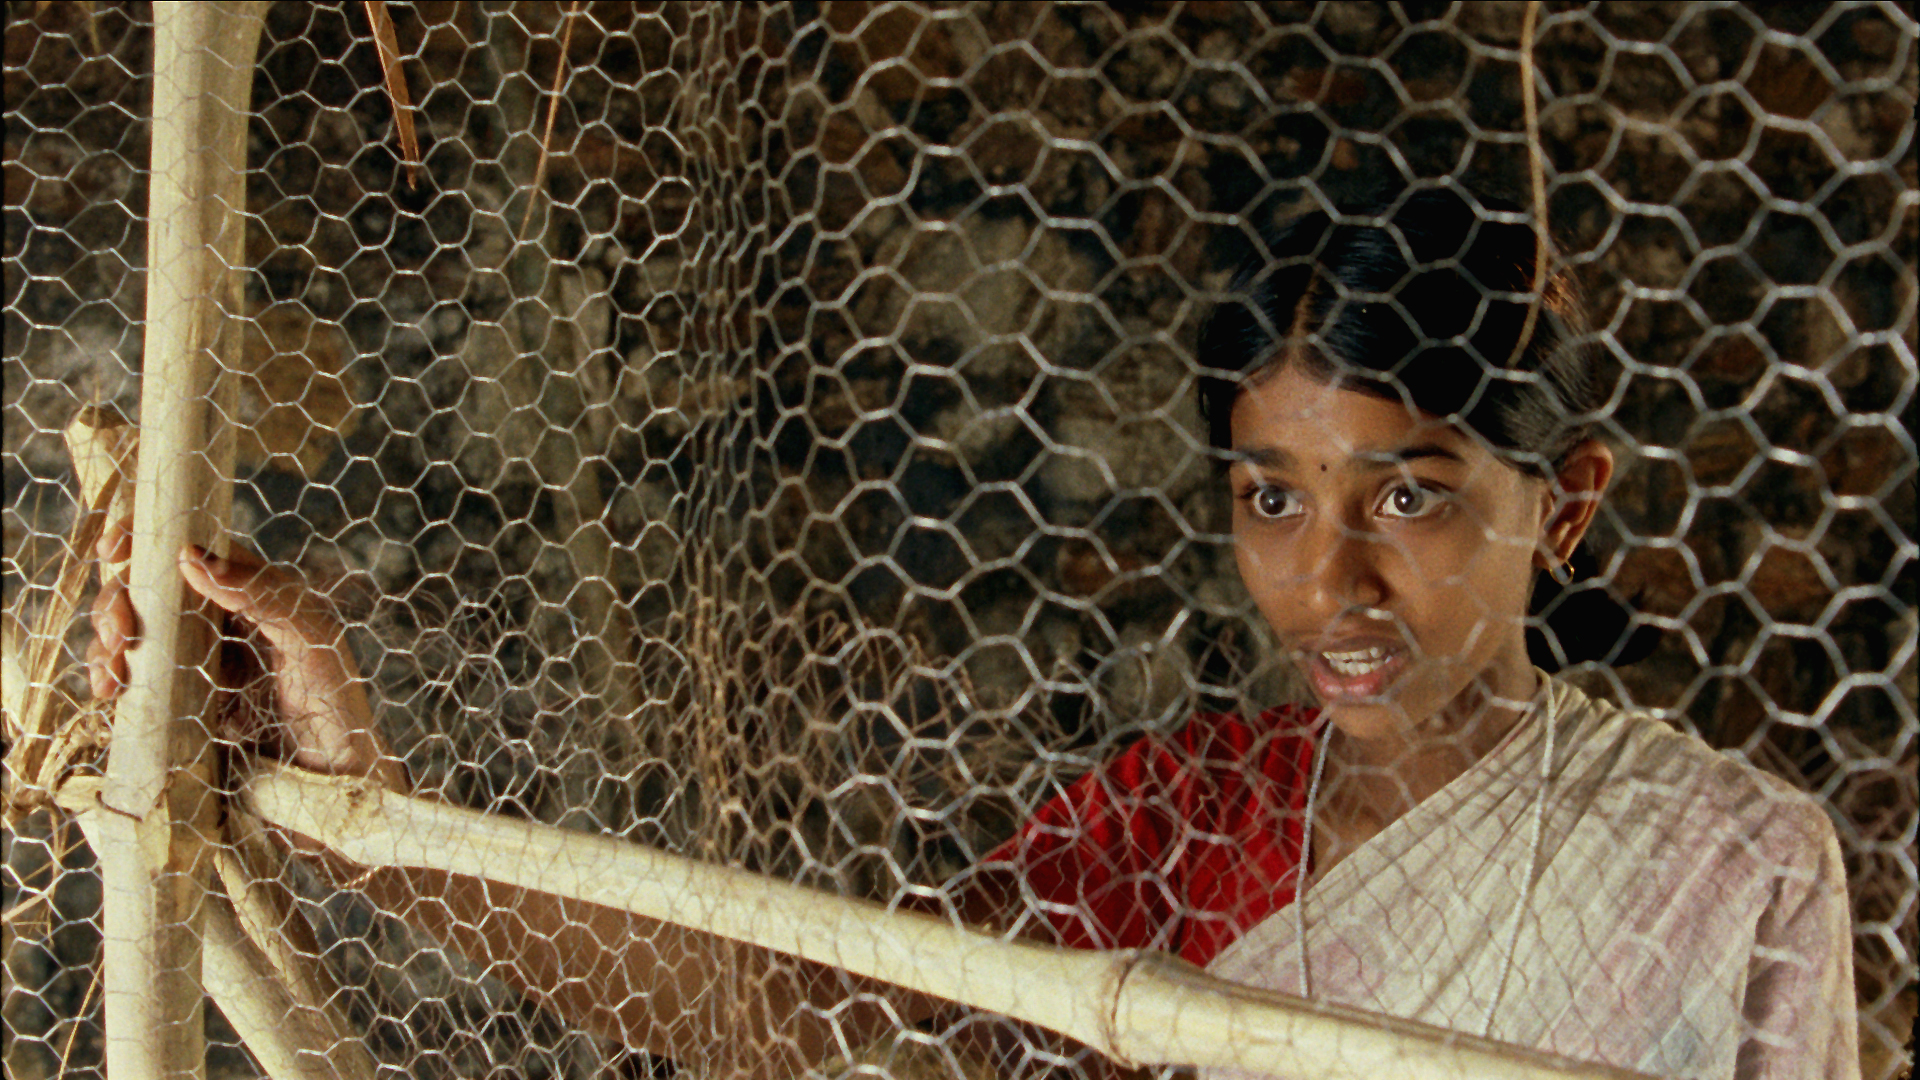 Vanaja behind Chicken coup Wire.jpg